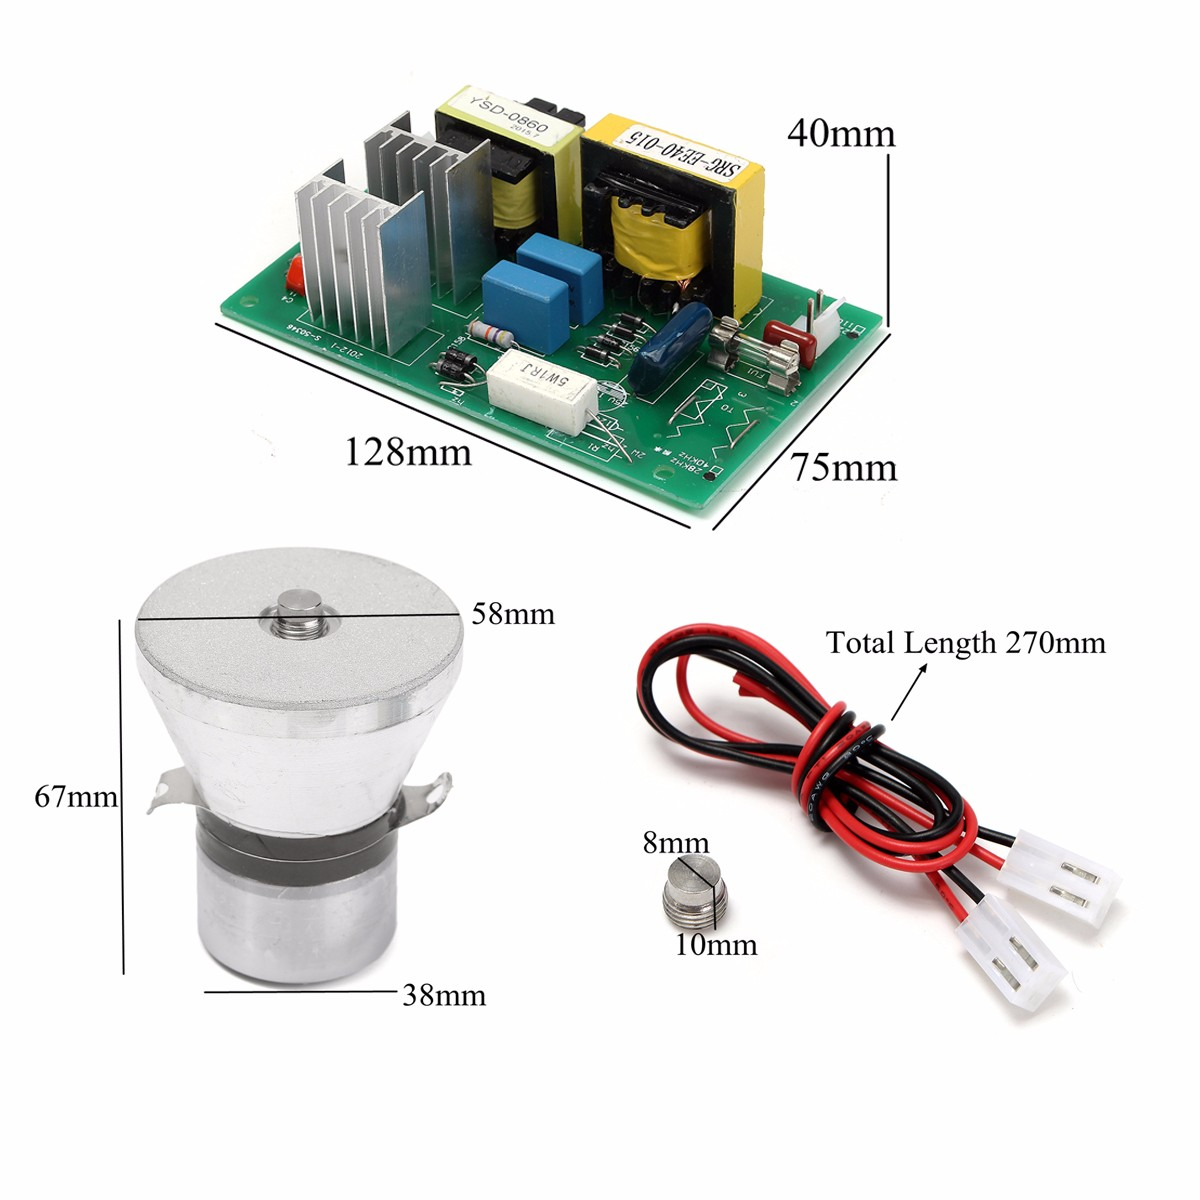 Ultrasonic Cleaner Parts 100W 28KHz Ultrasonic Cleaning Transducer Cleaner +Power Driver Board 220VAC